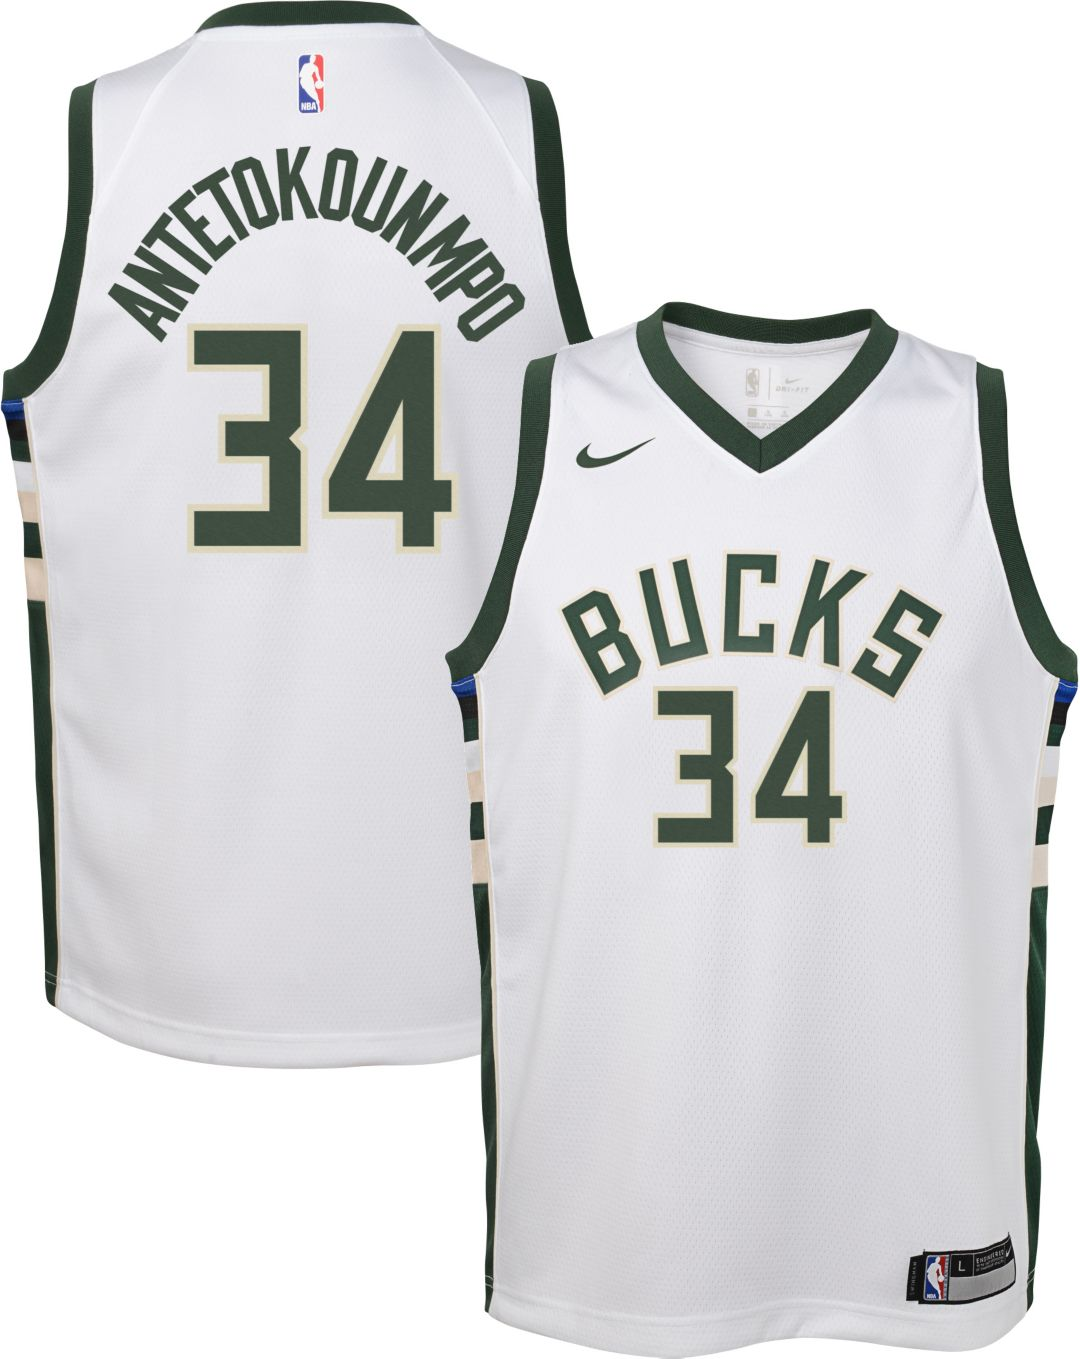 dea551954c8 Nike Youth Milwaukee Bucks Giannis Antetokounmpo #34 White Dri-FIT Swingman  Jersey 1